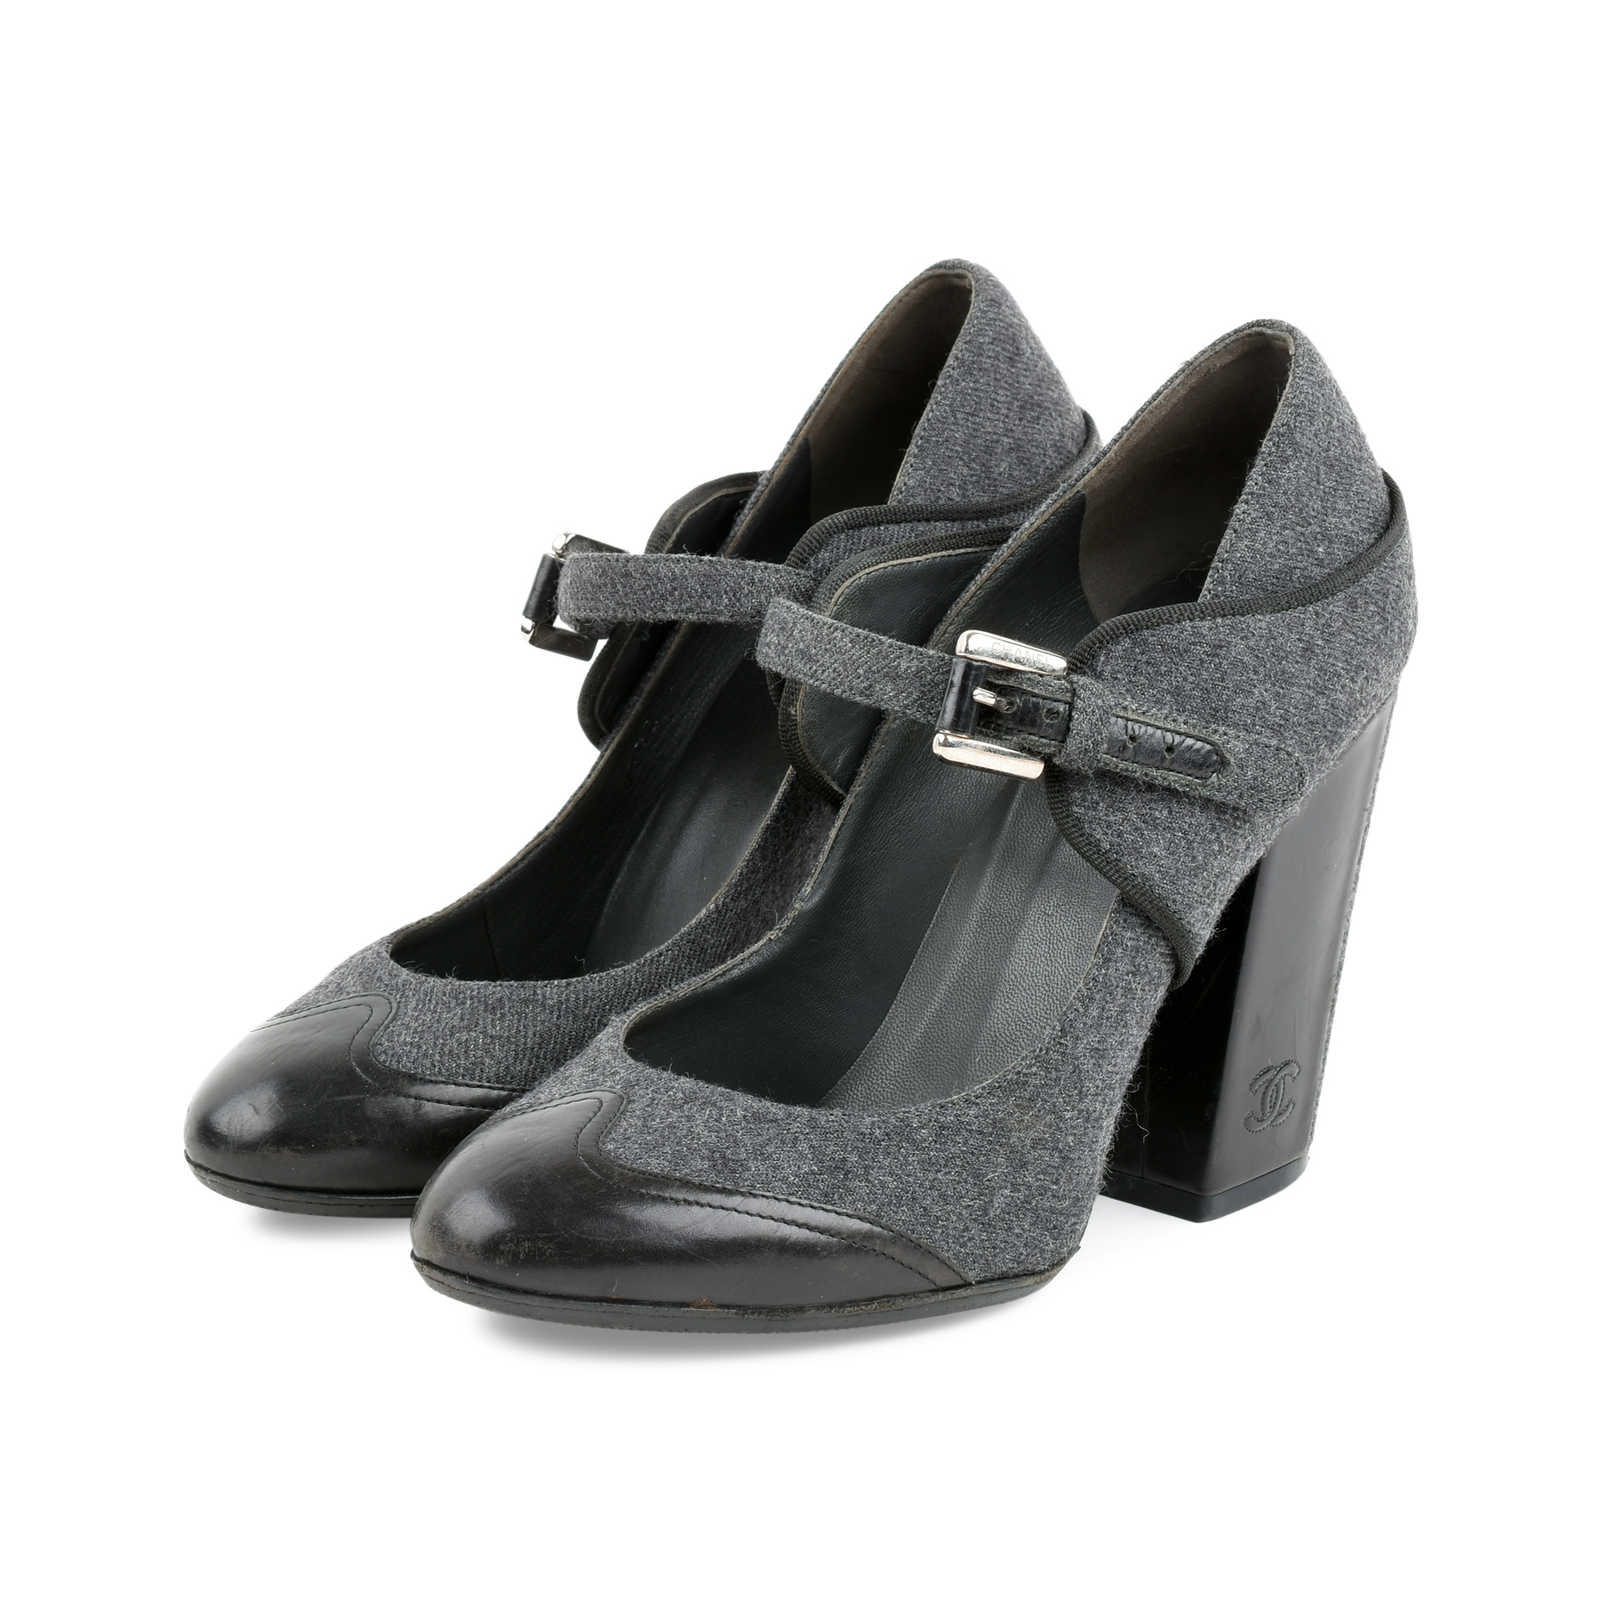 aab98aecf53 ... Authentic Second Hand Chanel Mary Jane Pumps (PSS-466-00013) - Thumbnail  ...